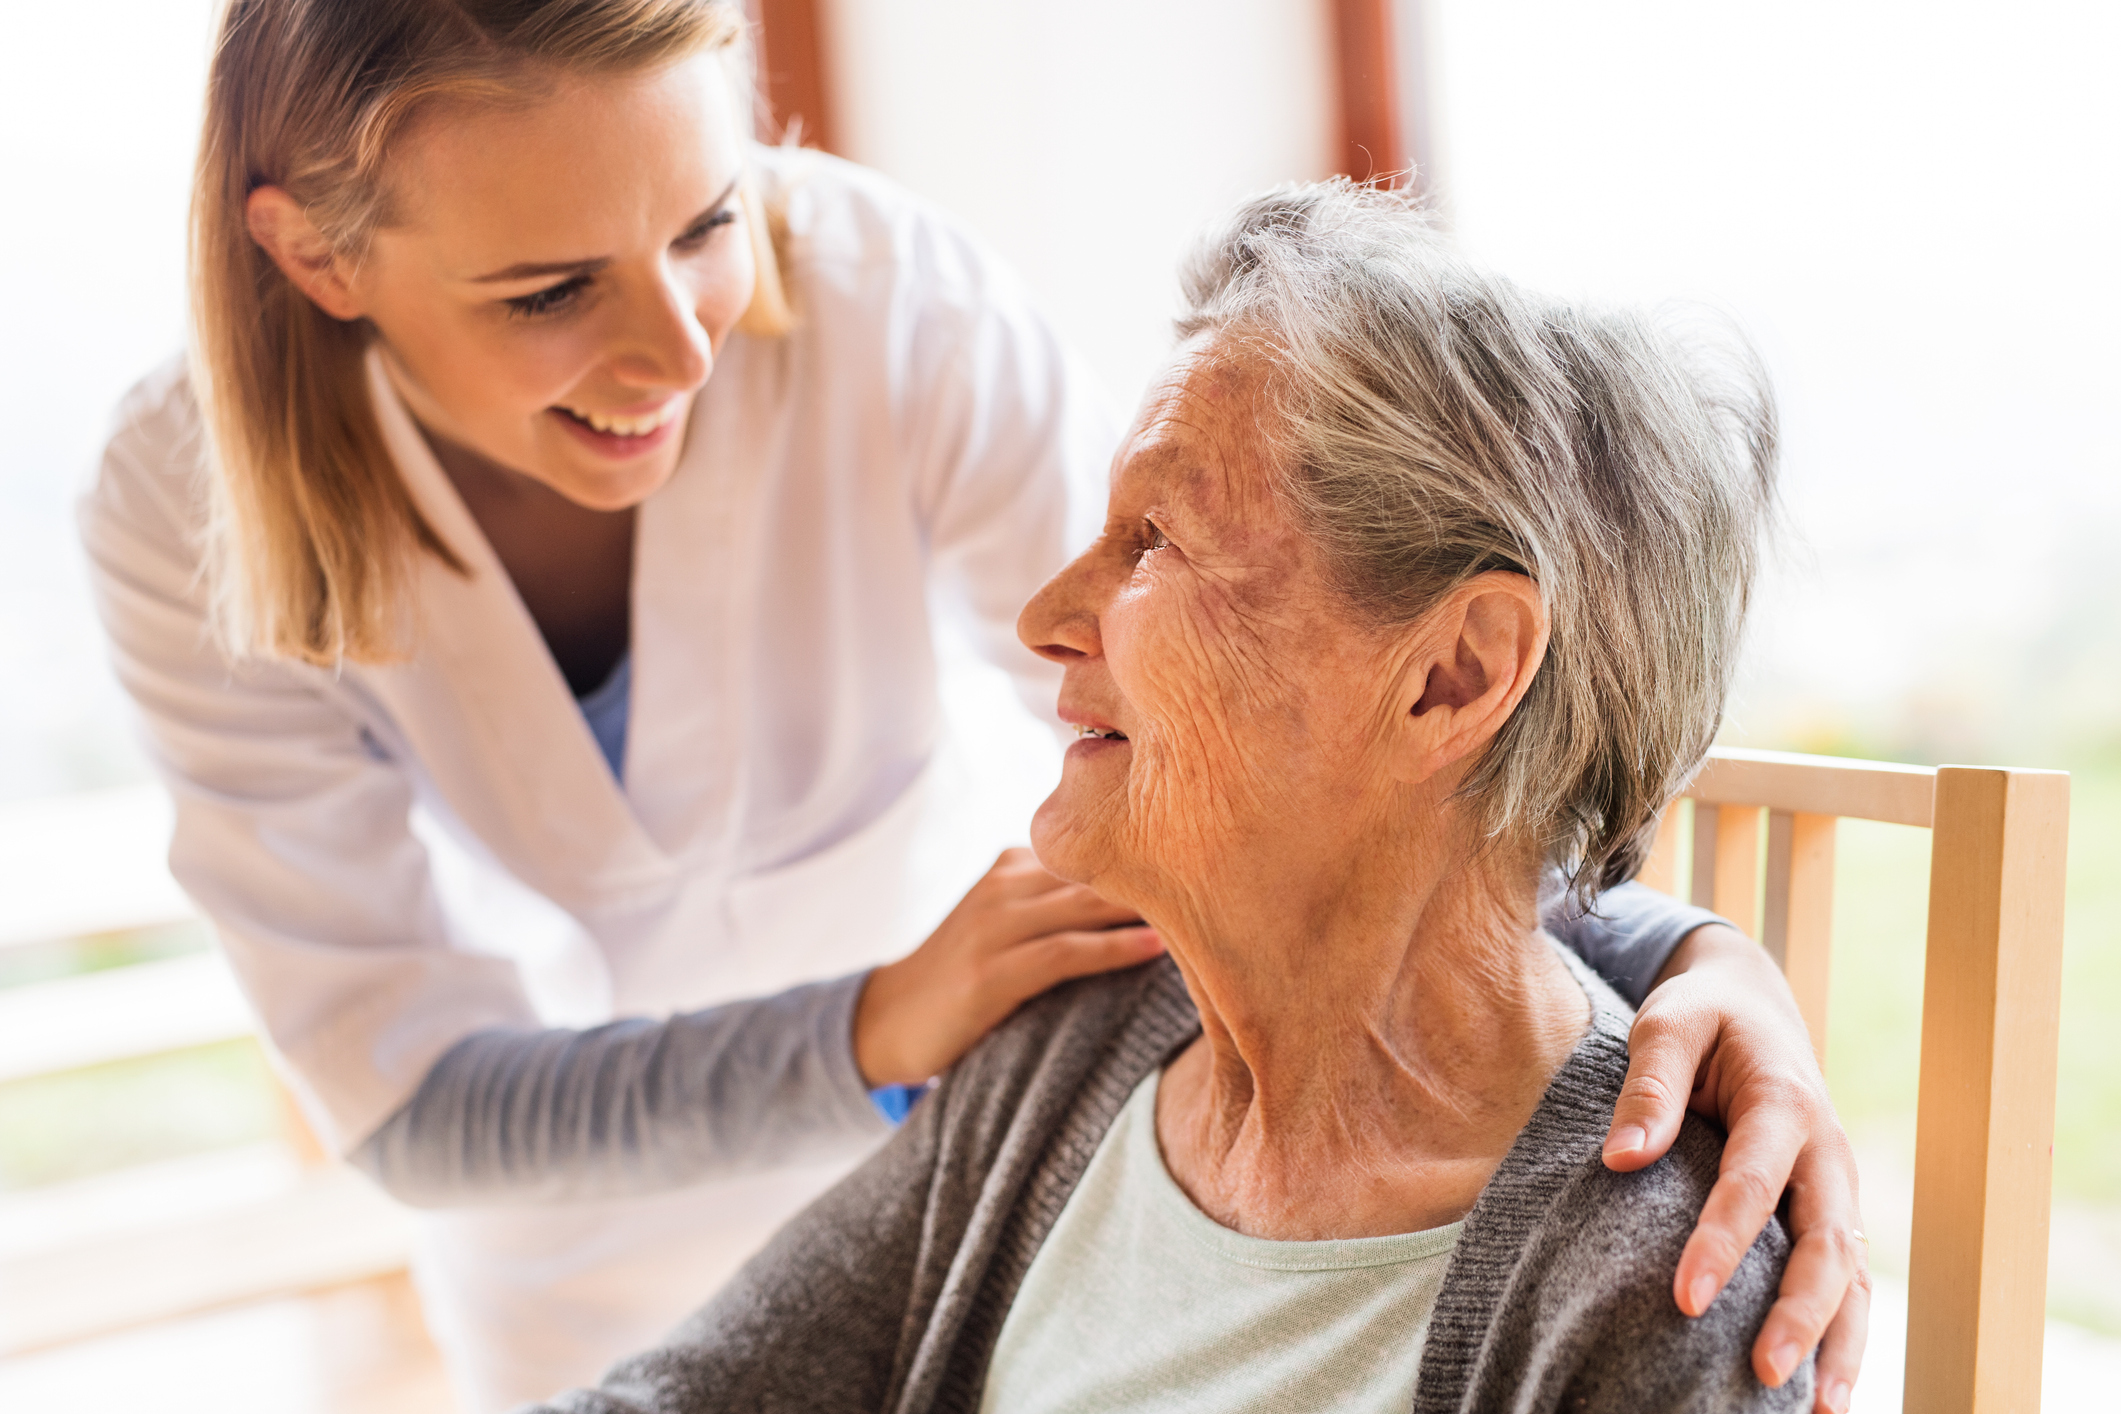 Ombudsmen work with individuals, families and institutions to favorably resolve care and residents' rights issues.